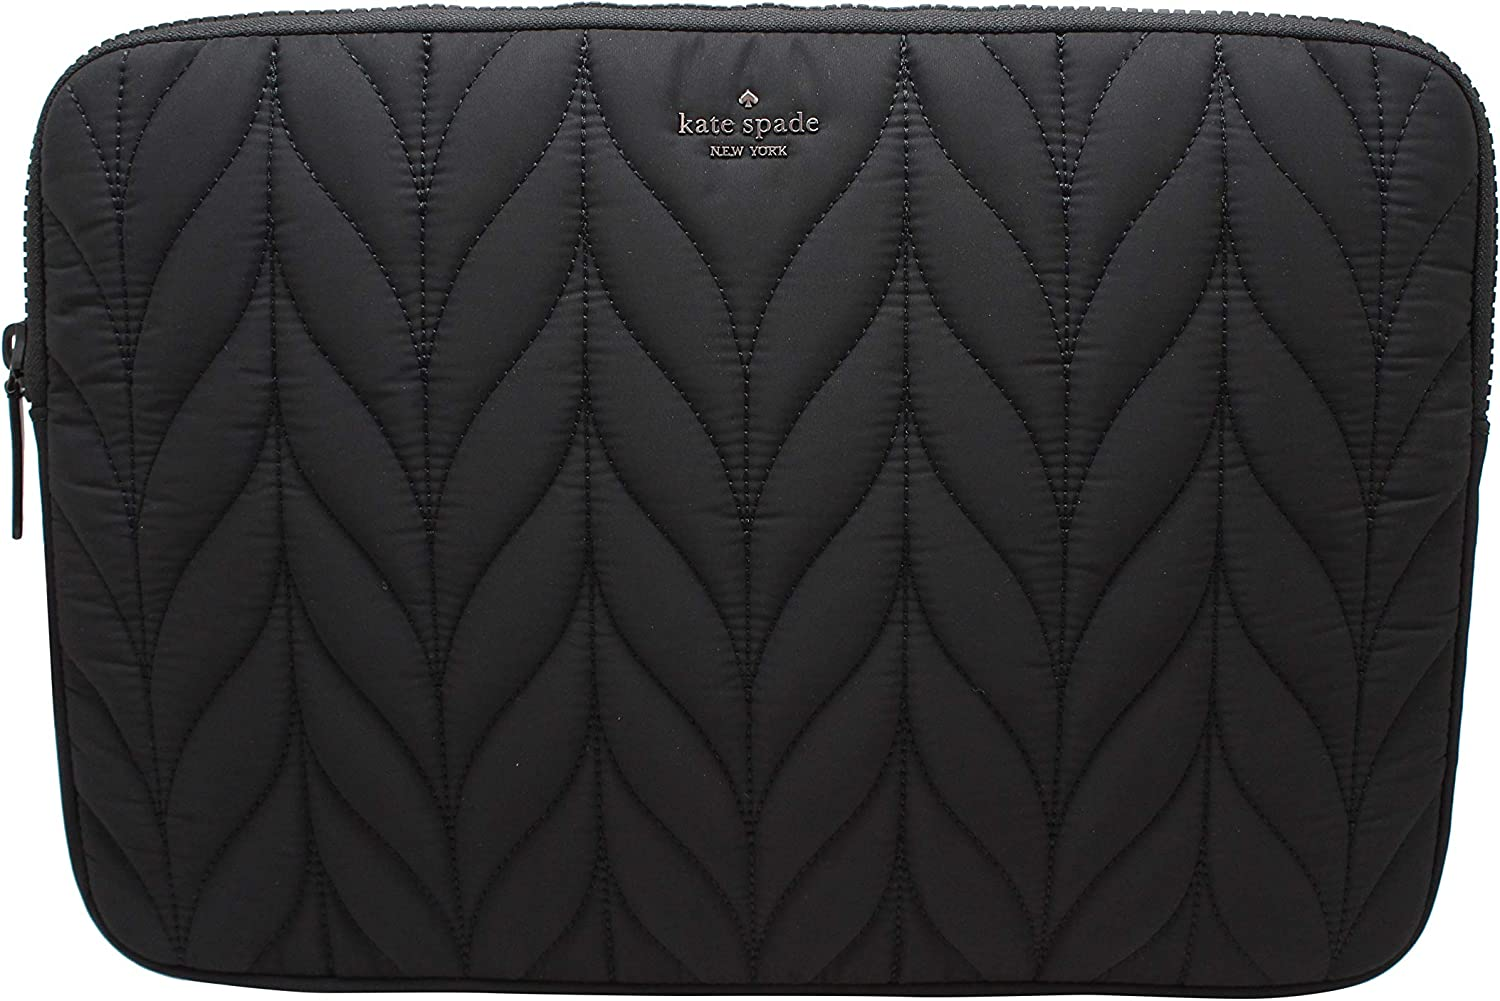 Kate Spade New York Ellie Universal Quilted Laptop Case Sleeve Black 15""